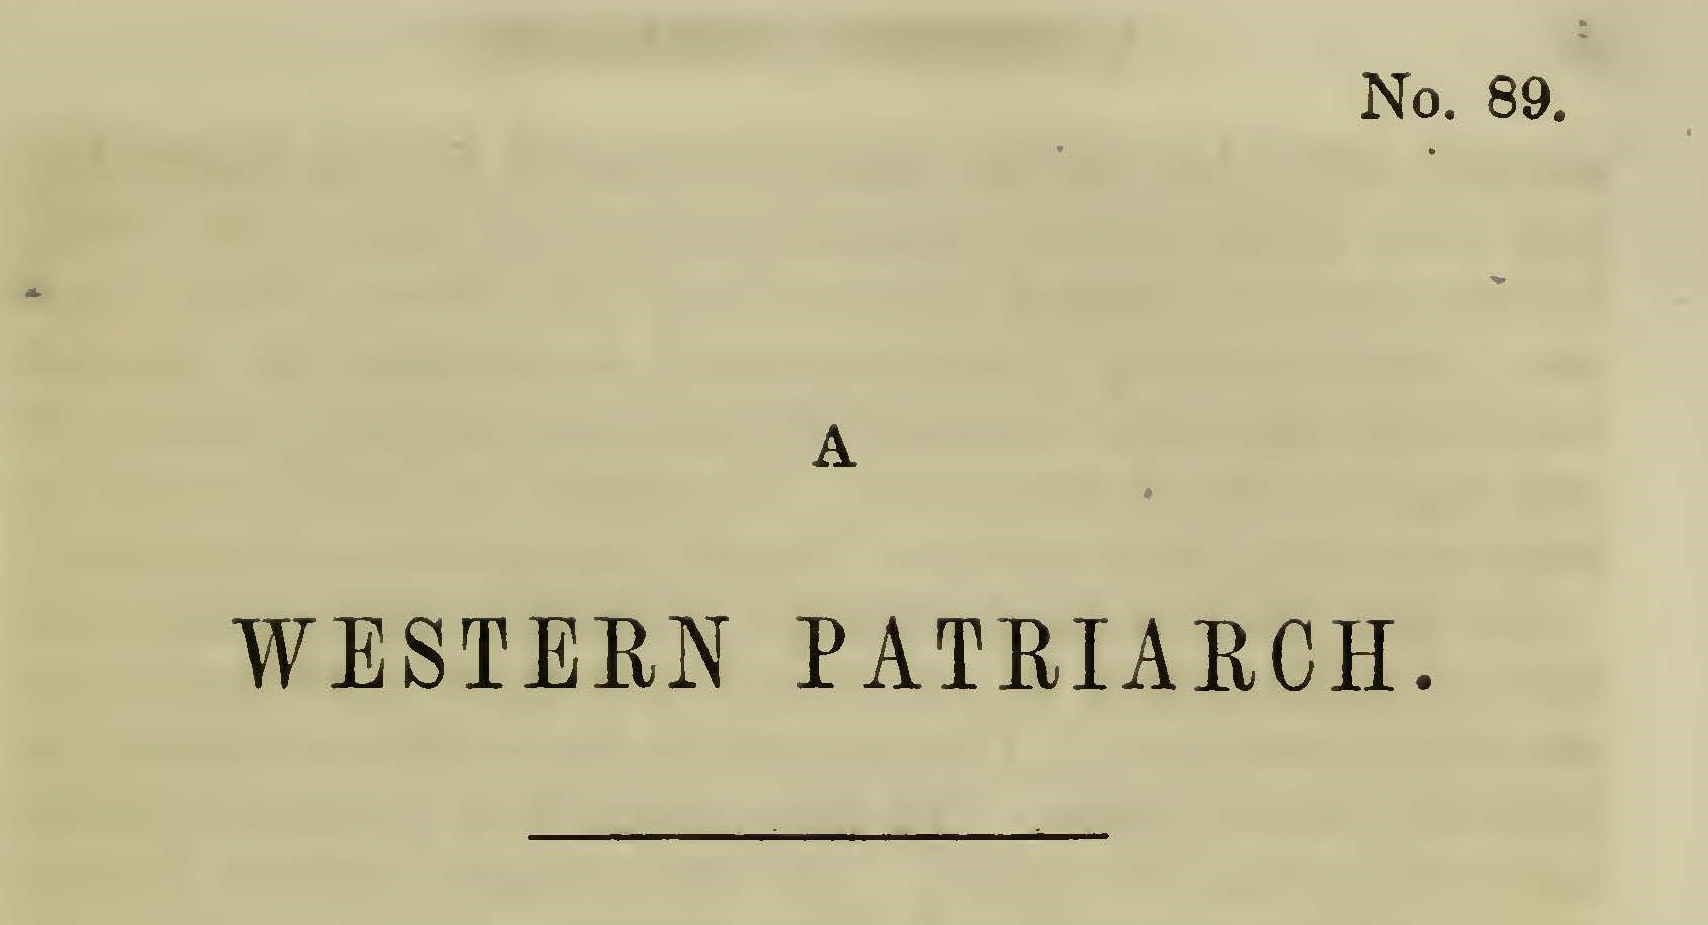 Plumer, William Swan, The Western Patriarch Title Page.jpg